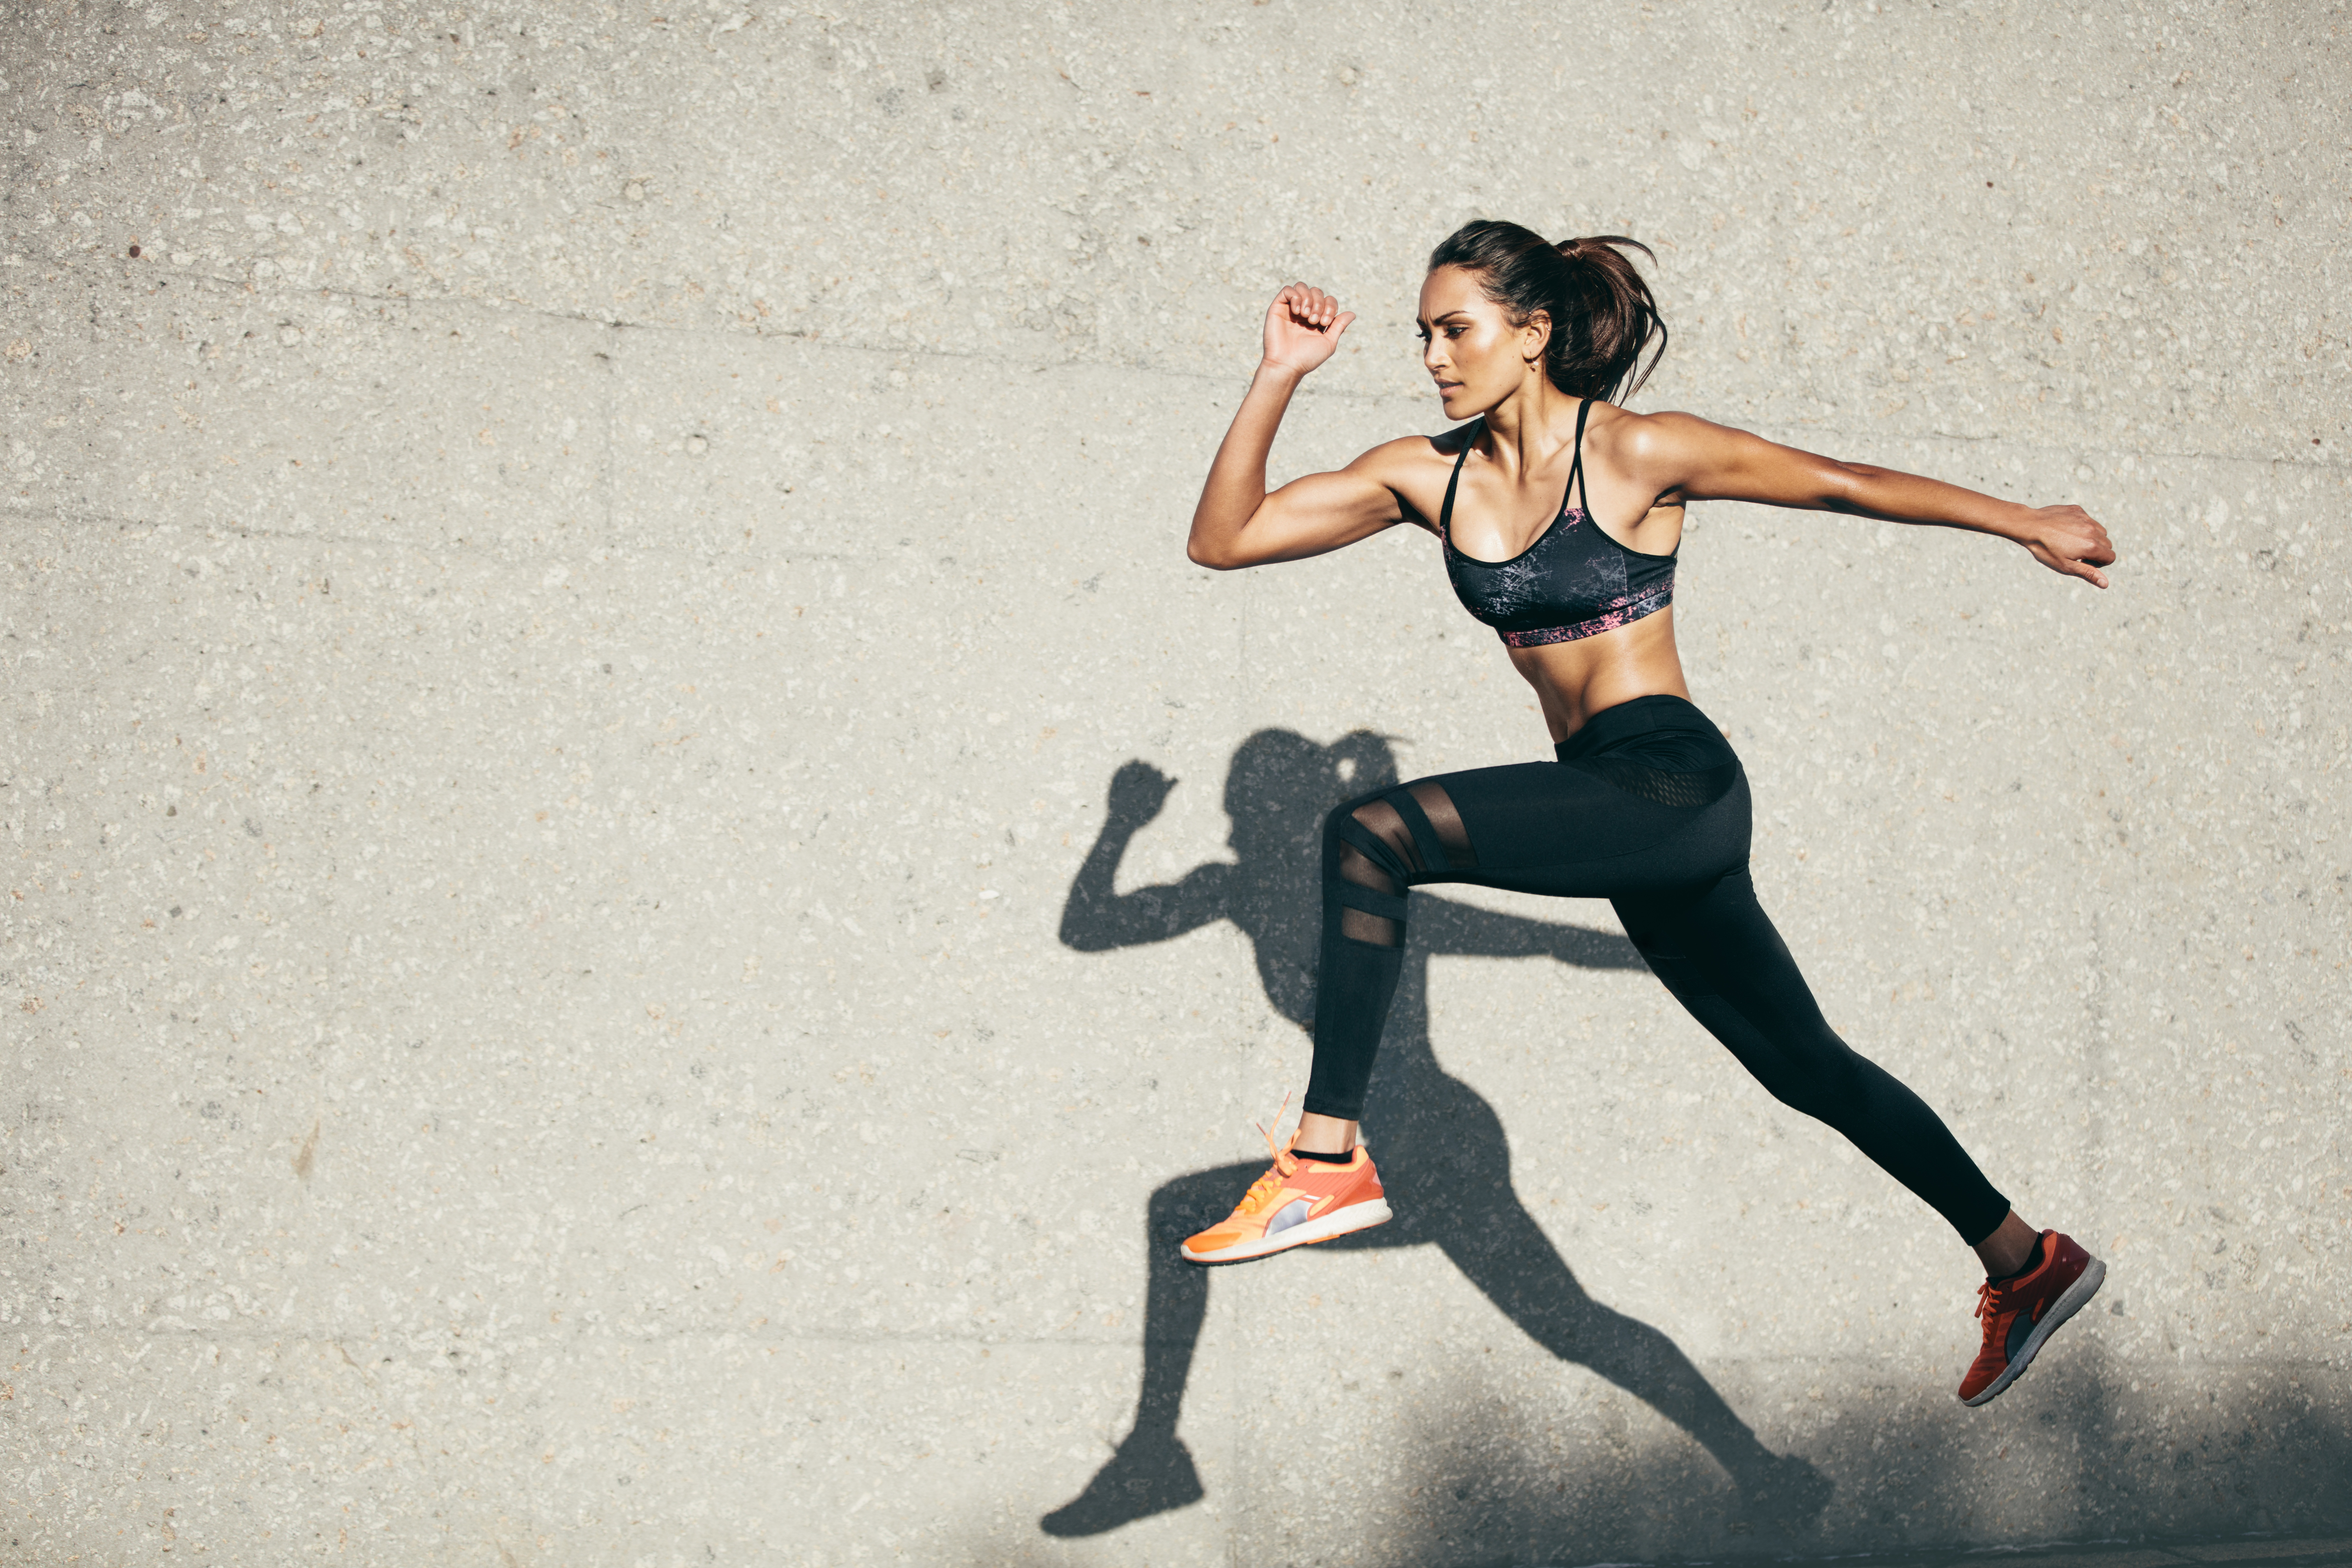 Fit-young-woman-jumping-and-running-853930556_8660x5773 (1)